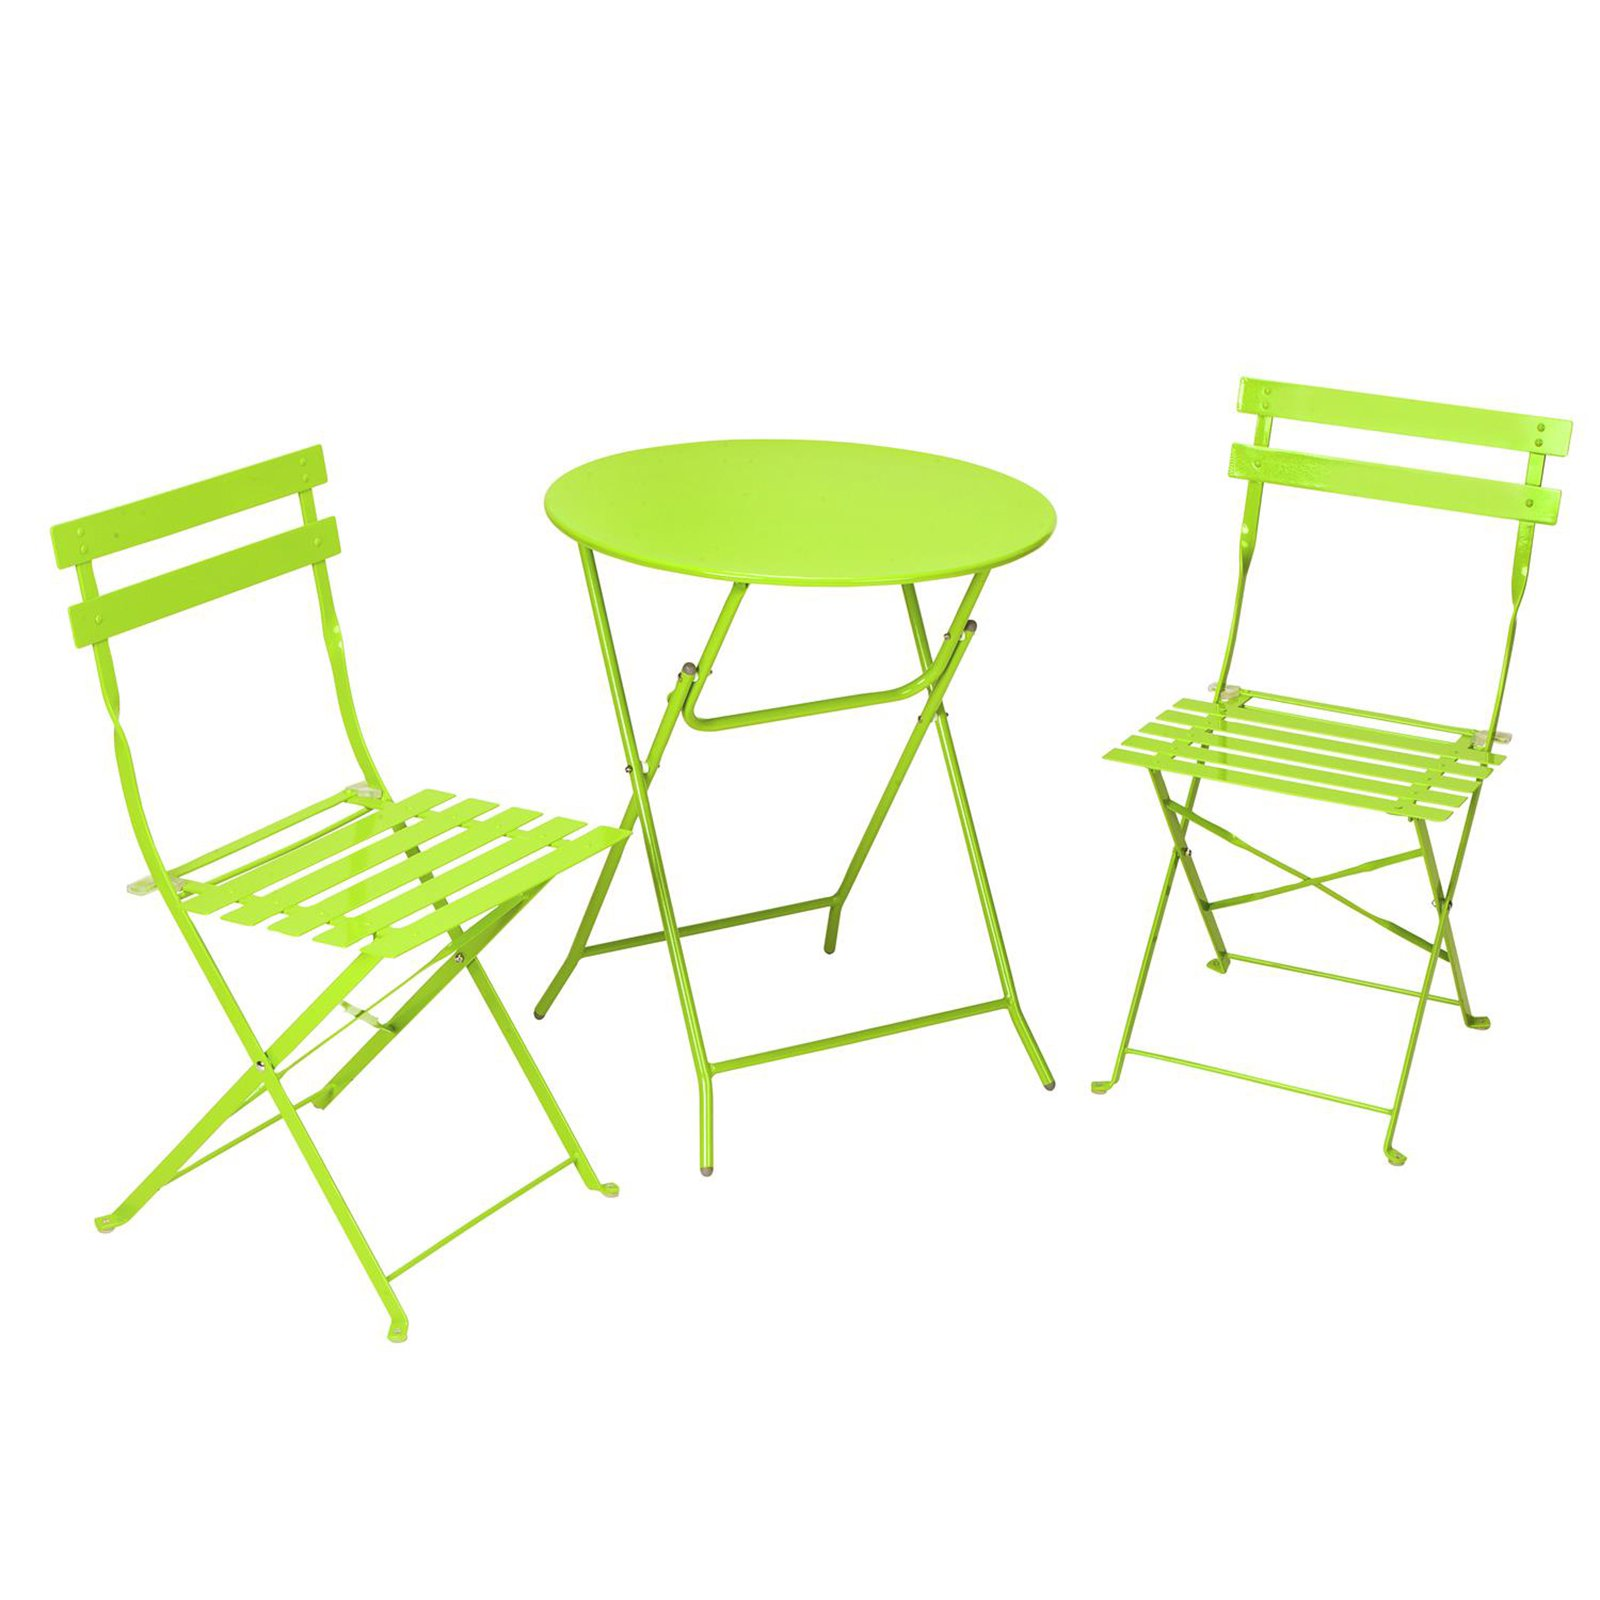 Outdoor Cosco Metal 3 Piece Folding Patio Bistro Set